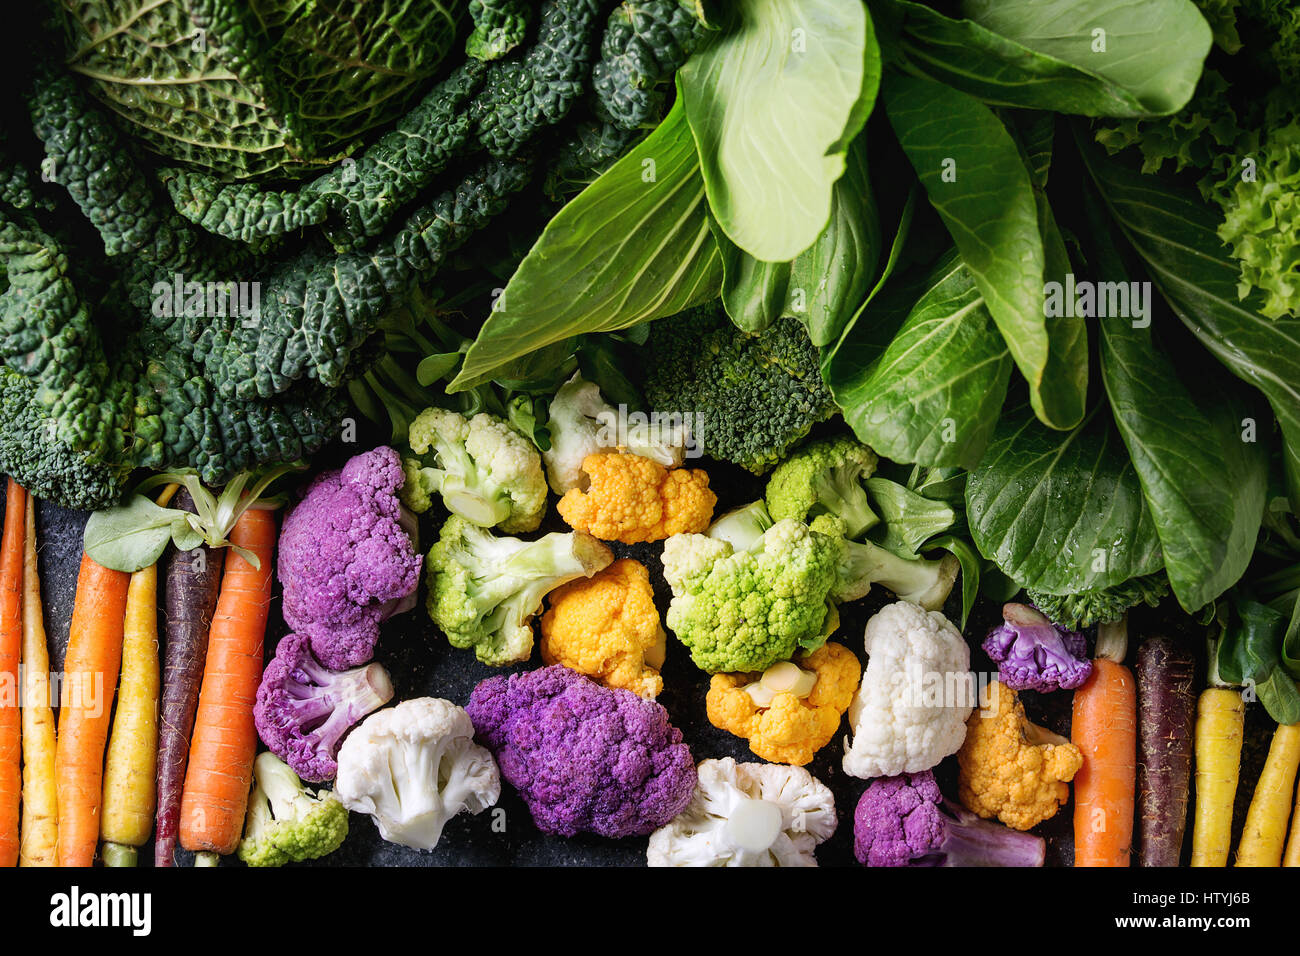 Variety of raw green vegetables salads, lettuce, bok choy, corn, broccoli, savoy cabbage, colorful young carrots - Stock Image